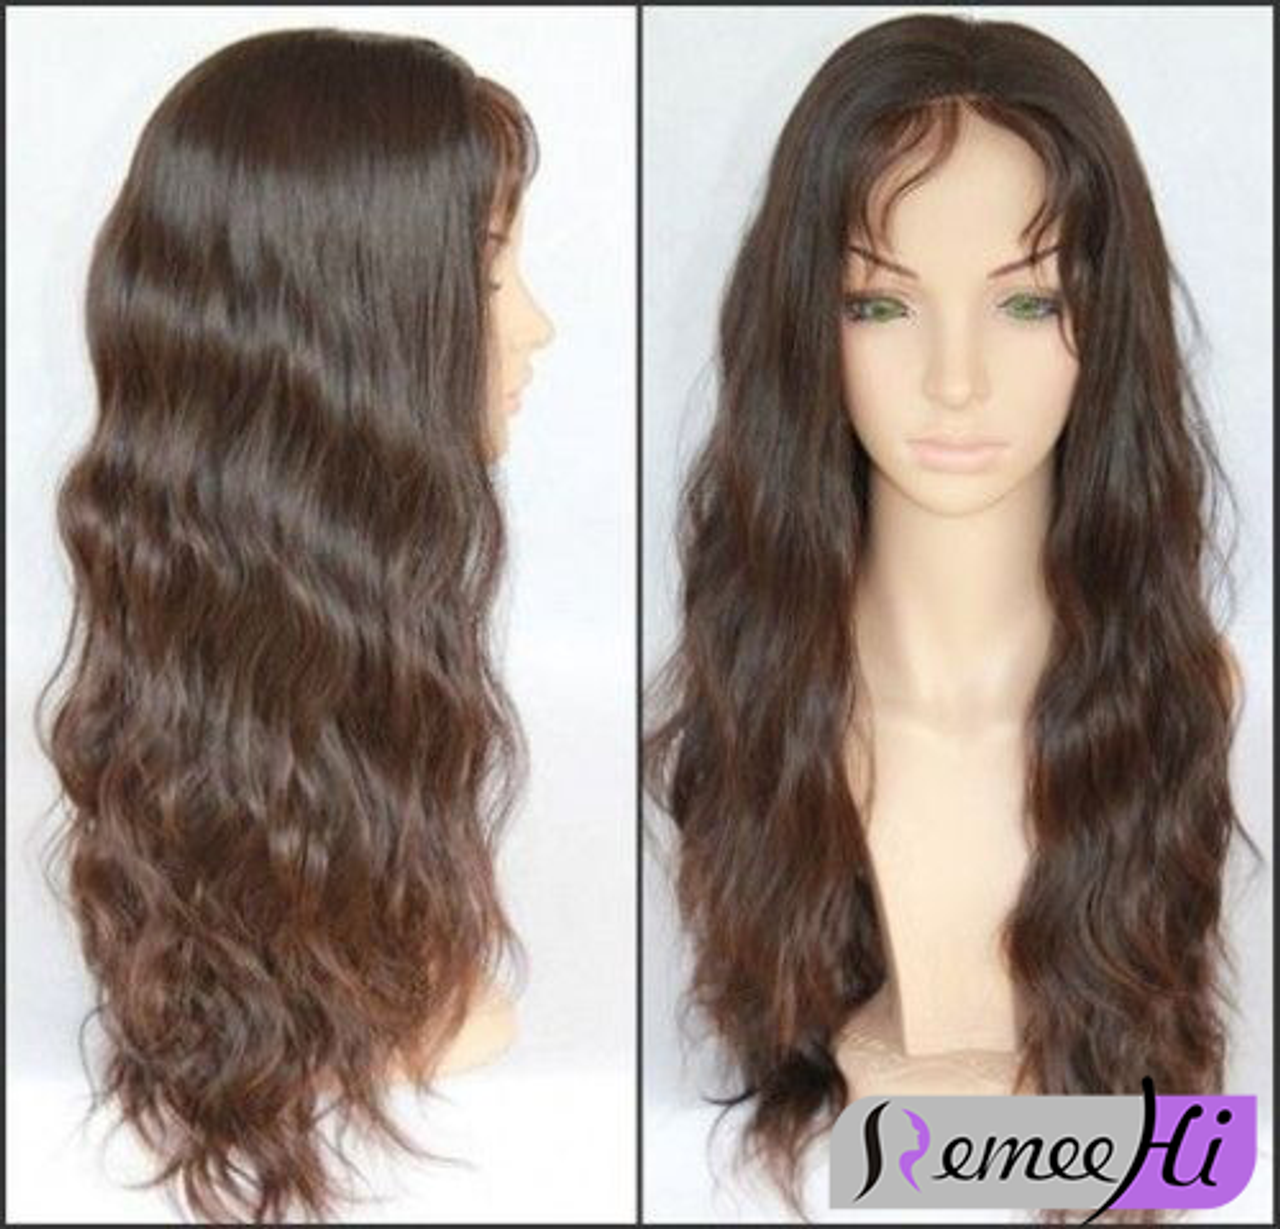 Remeehi long body wave Full Lace wigs 100